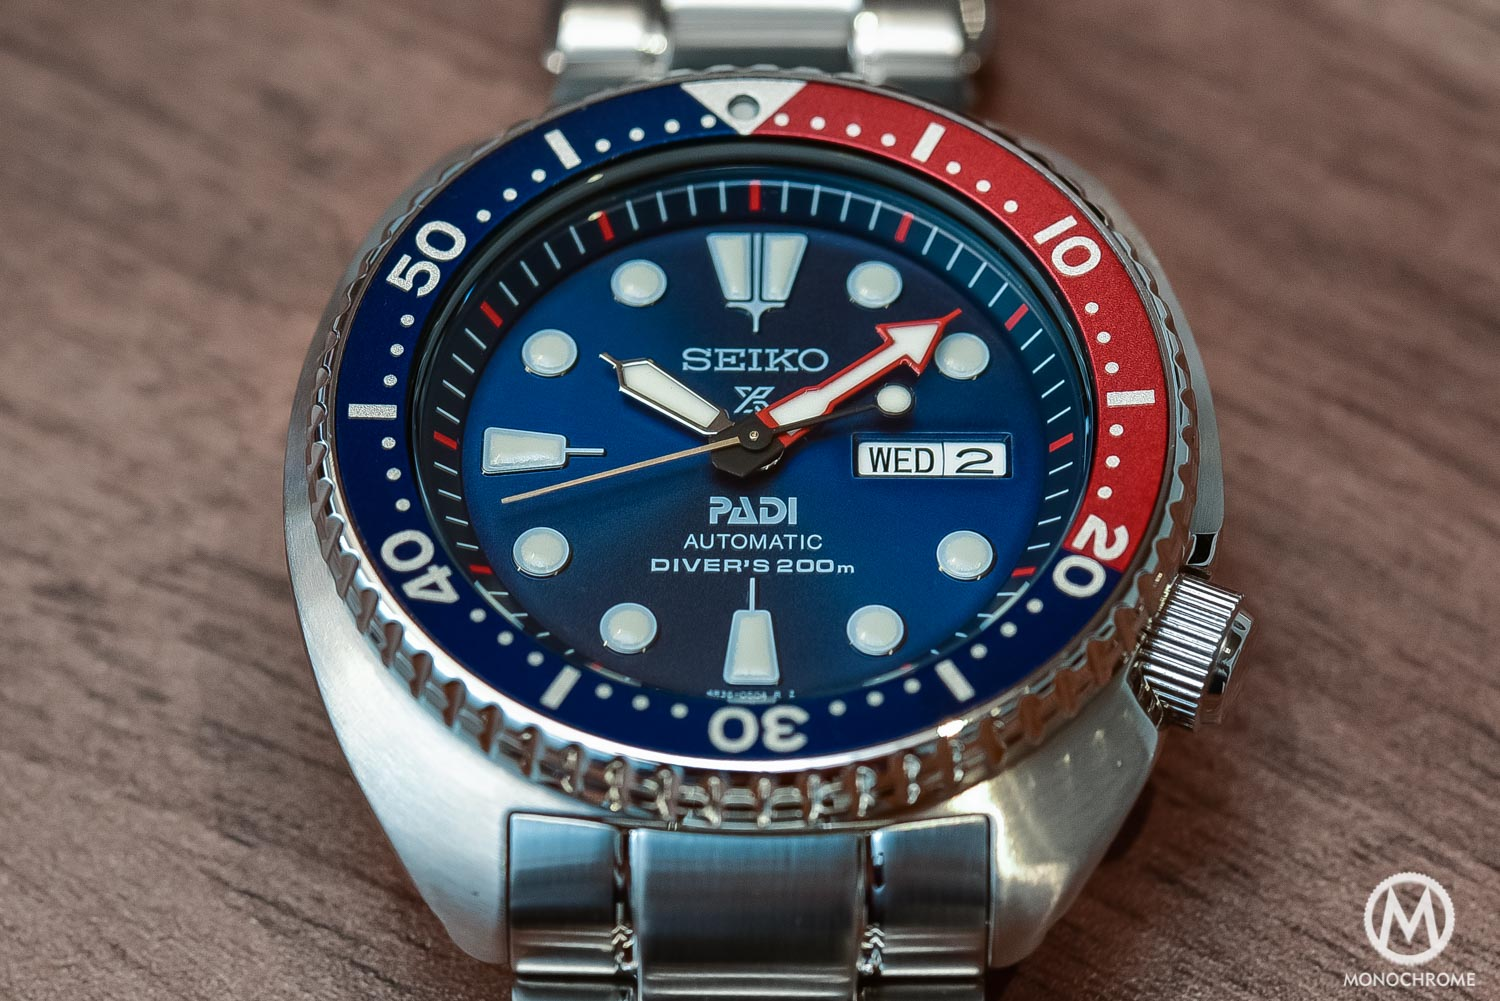 a6ea79c63 Hands-On Review - Seiko Prospex SRPA21 PADI Turtle - A nice ...